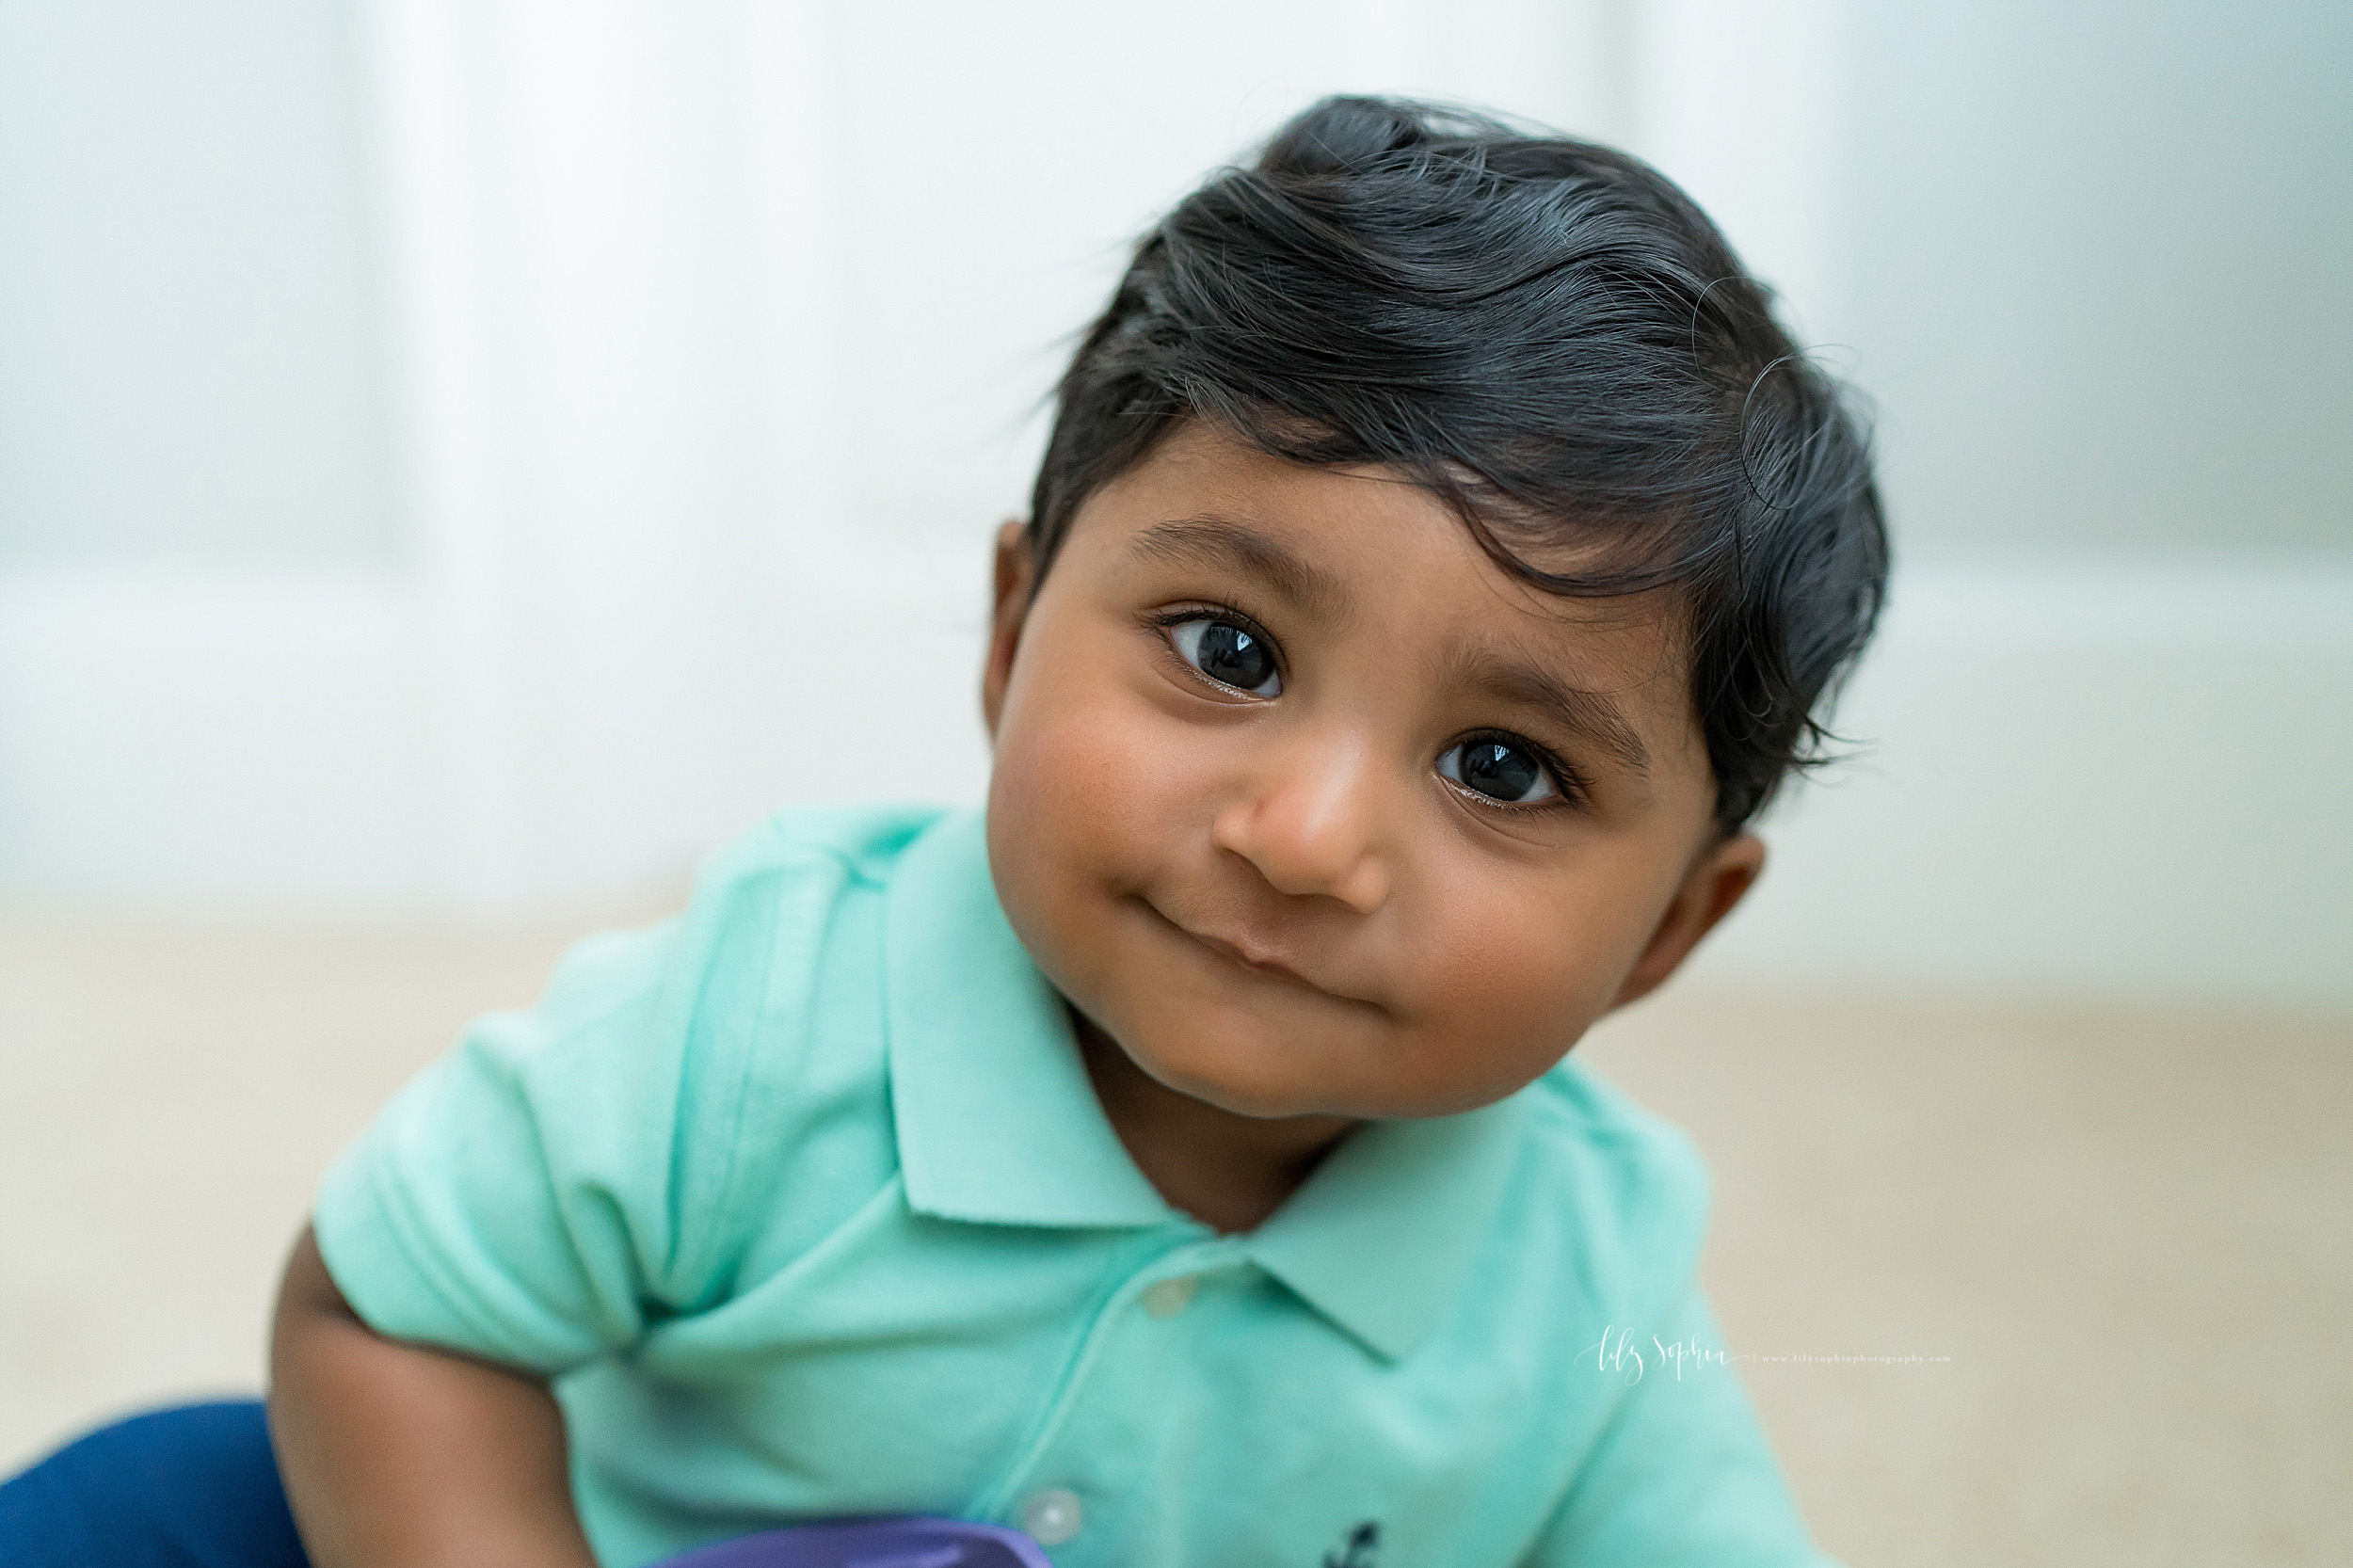 Milestone photo of an Indian baby boy at his home in East Cobb, Georgia.